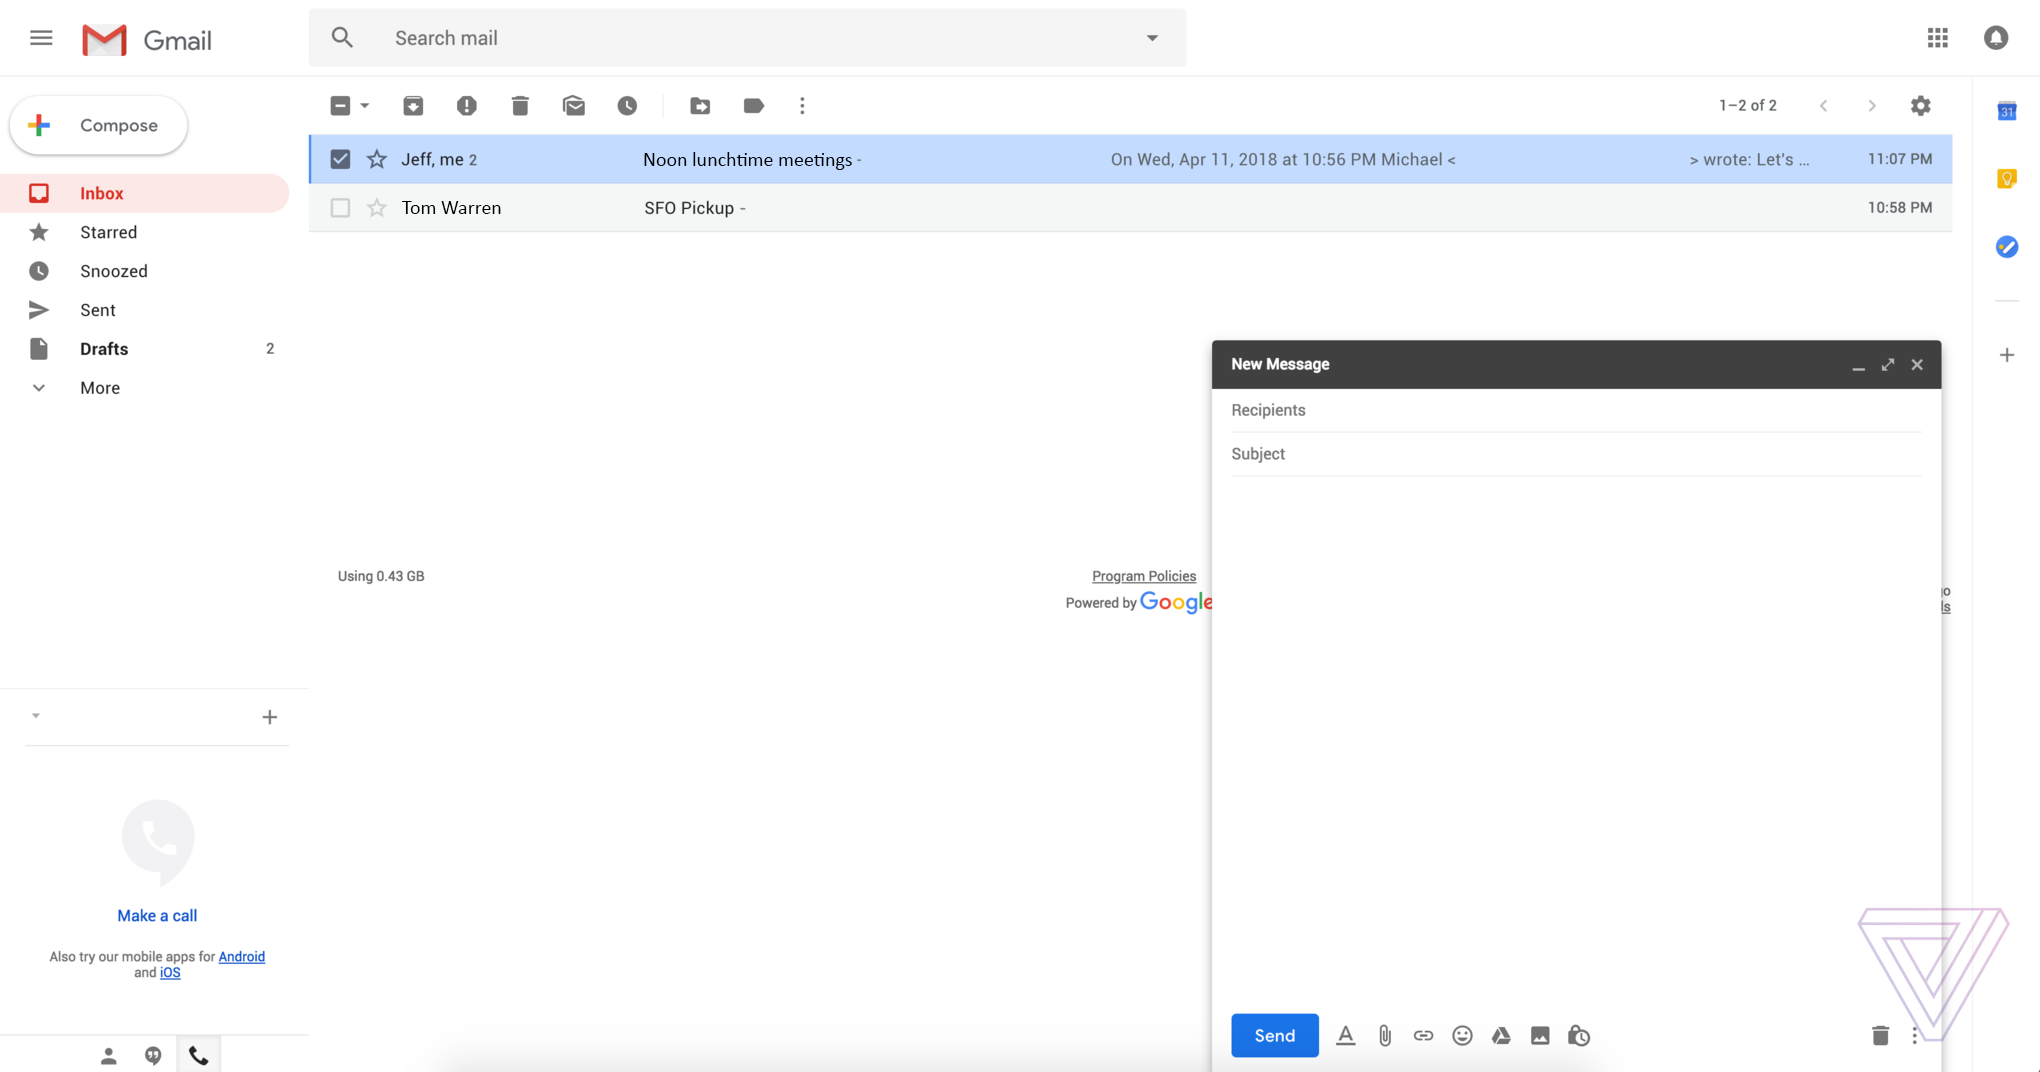 This Is The New Gmail Design Verge 71 Nova Engine Wiring Diagram 1 Of 8